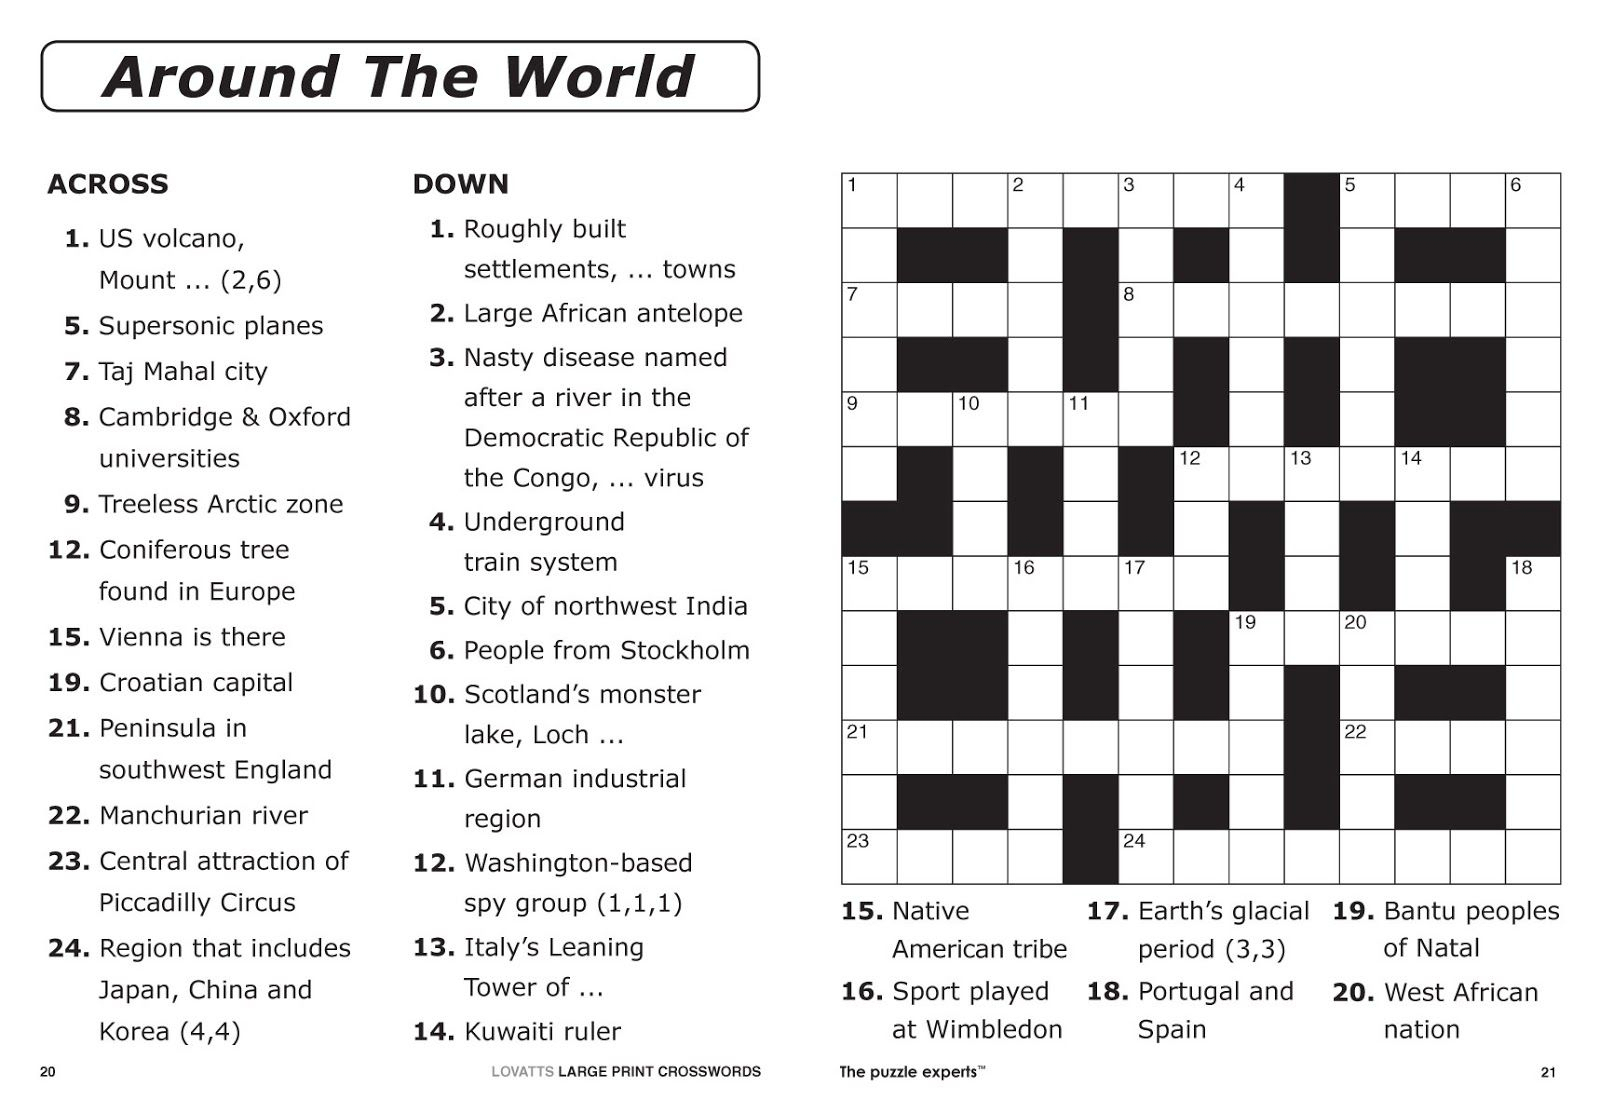 Free Printable Large Print Crossword Puzzles | M3U8 - Printable Puzzles For 14 Year Olds